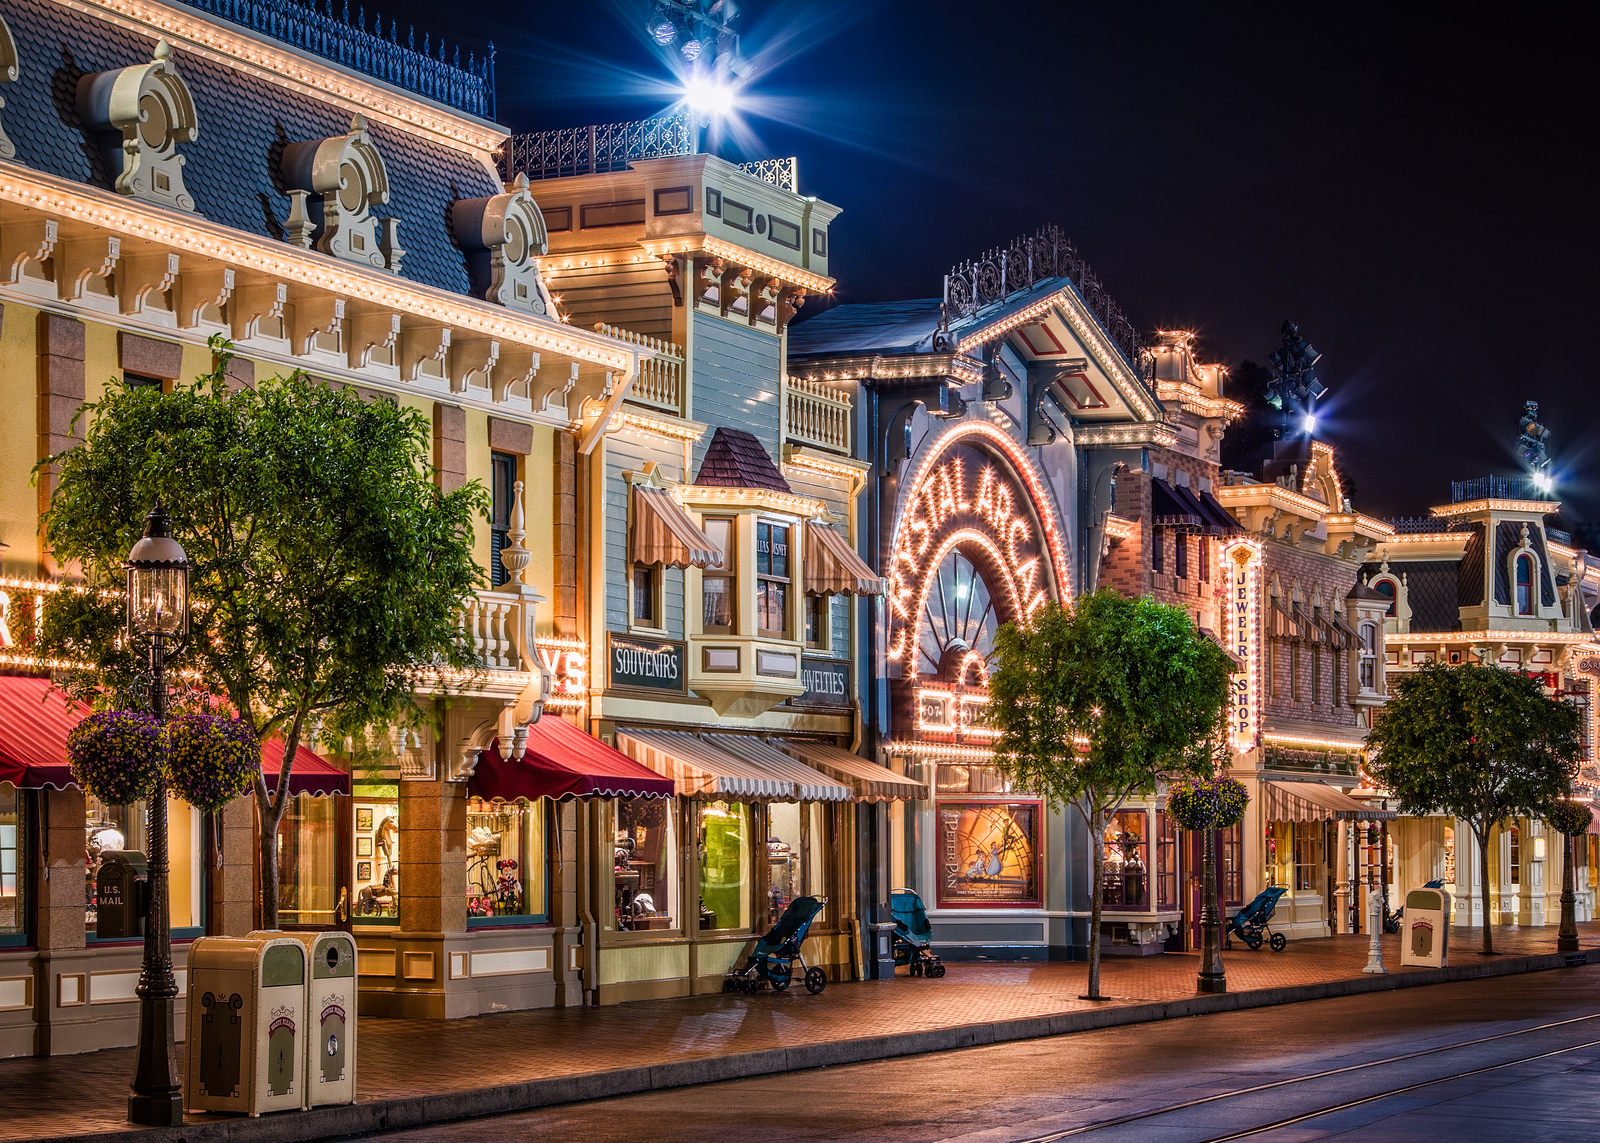 Disneyland Hd Wallpaper Mega Wallpapers 1600x1143